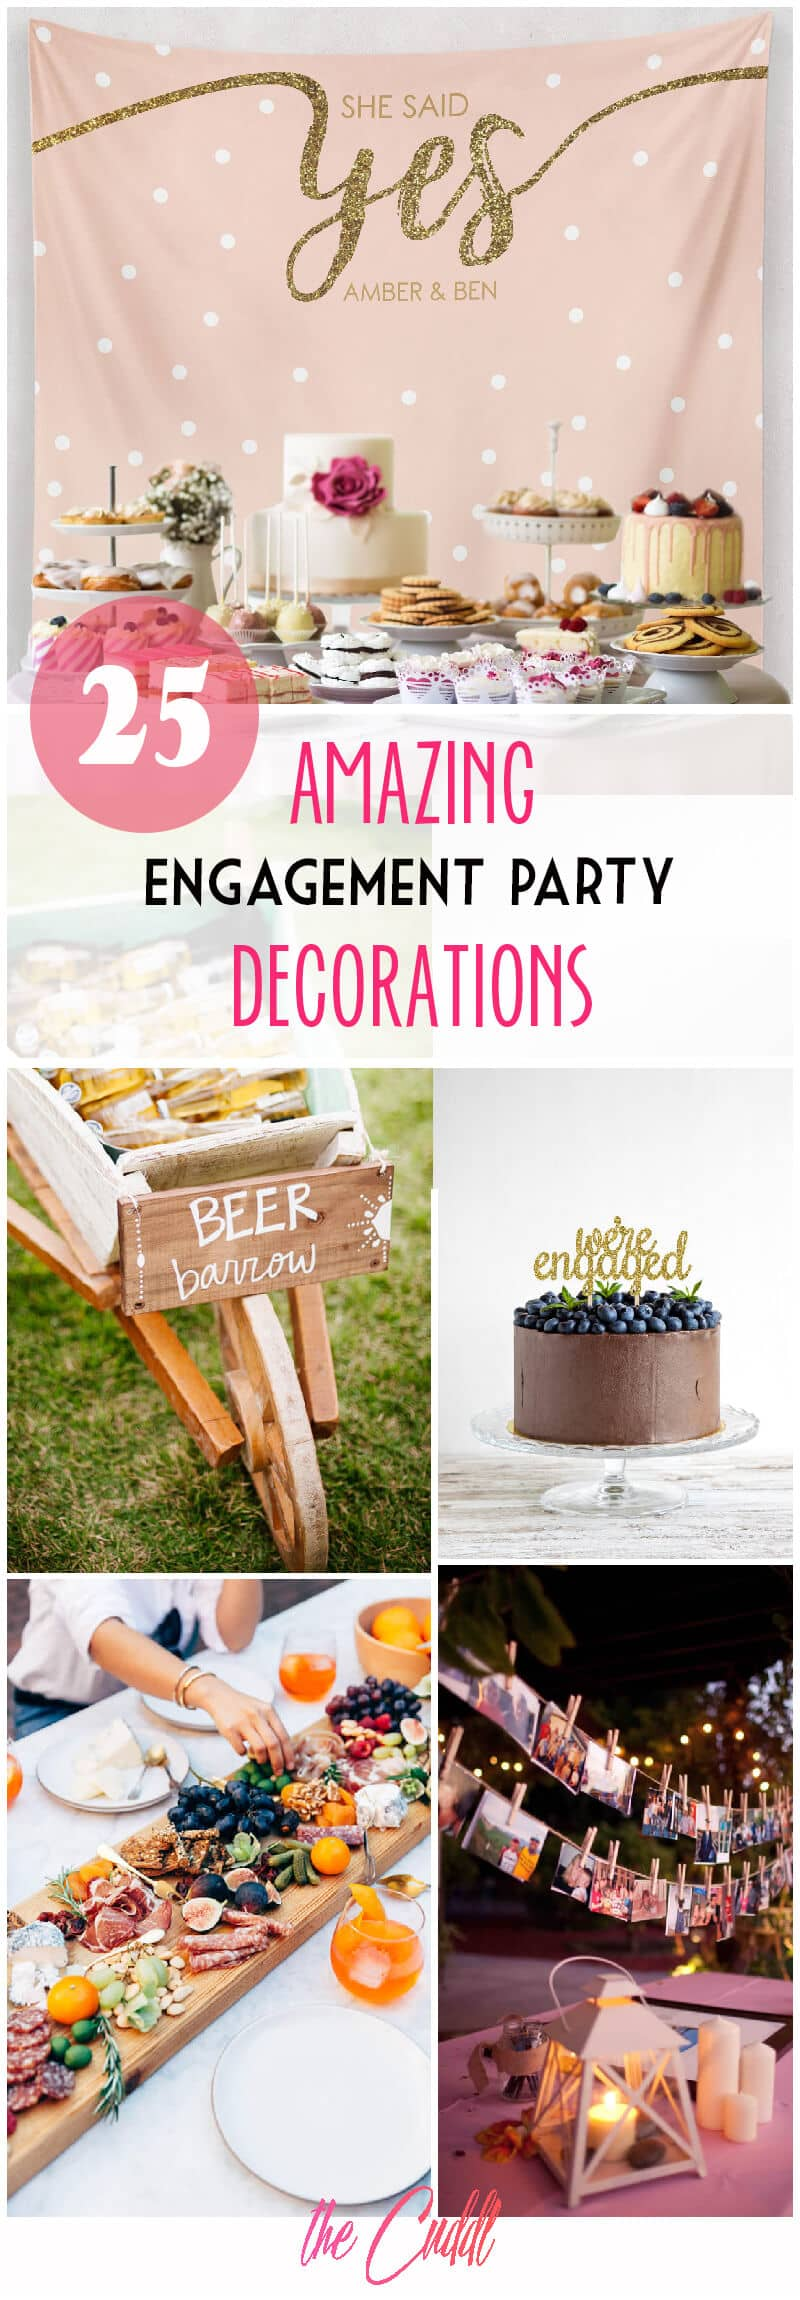 25 amazing diy engagement party decoration ideas for 2018 25 amazing diy engagement party decorations that will leave a lasting impression solutioingenieria Gallery